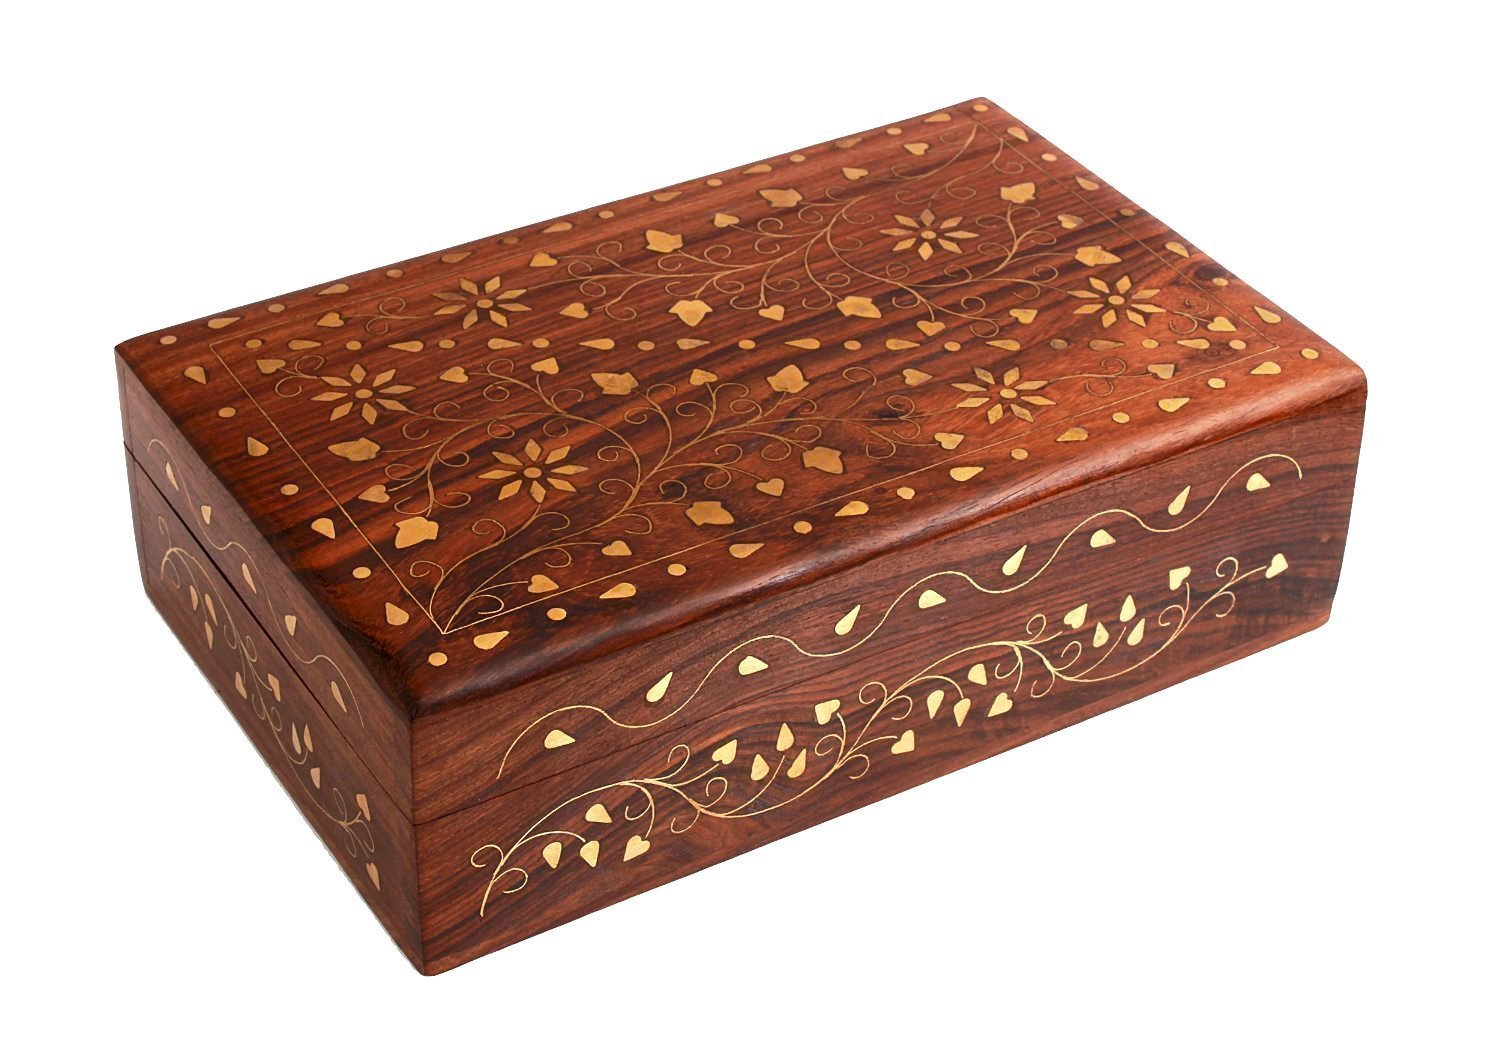 Hand Crafted Wooden Decorative Trinket Jewelry Box Organiser with Mughal Inspired Floral Carvings & Brass Inlay-Centre Flower by Super India Artisan of India